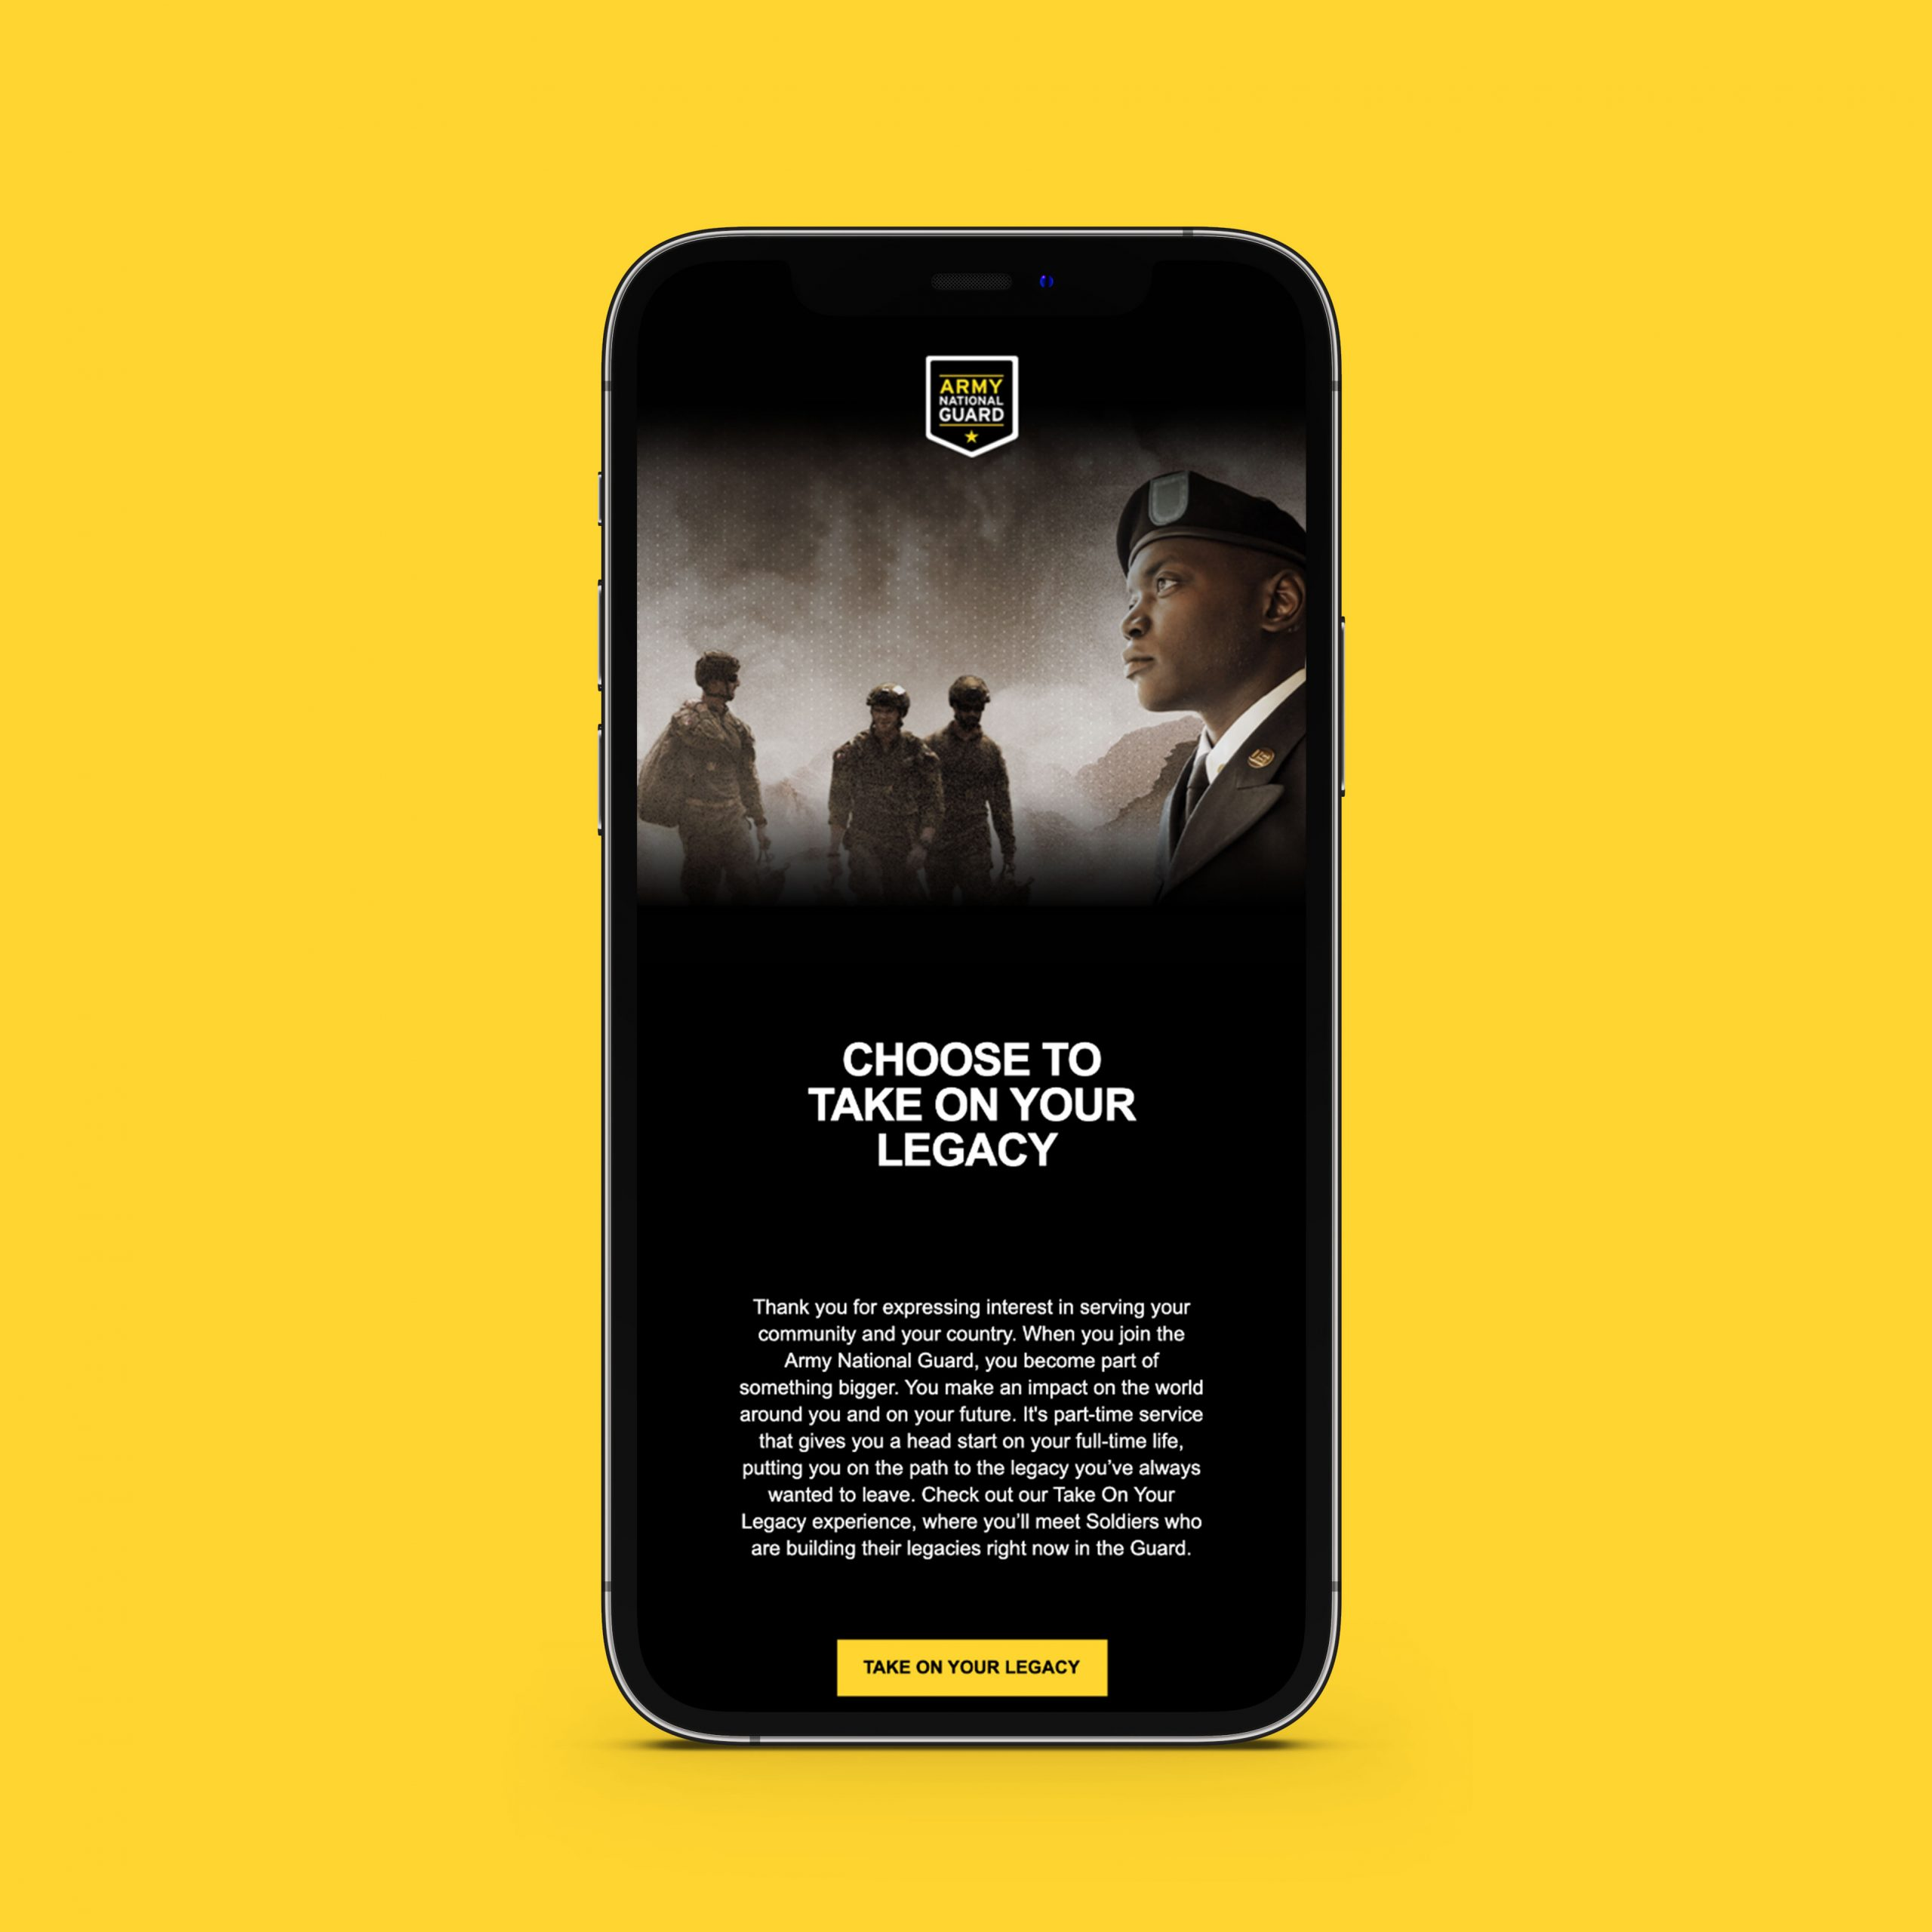 Army National Guard Legacy Campaign on iPhone mockup